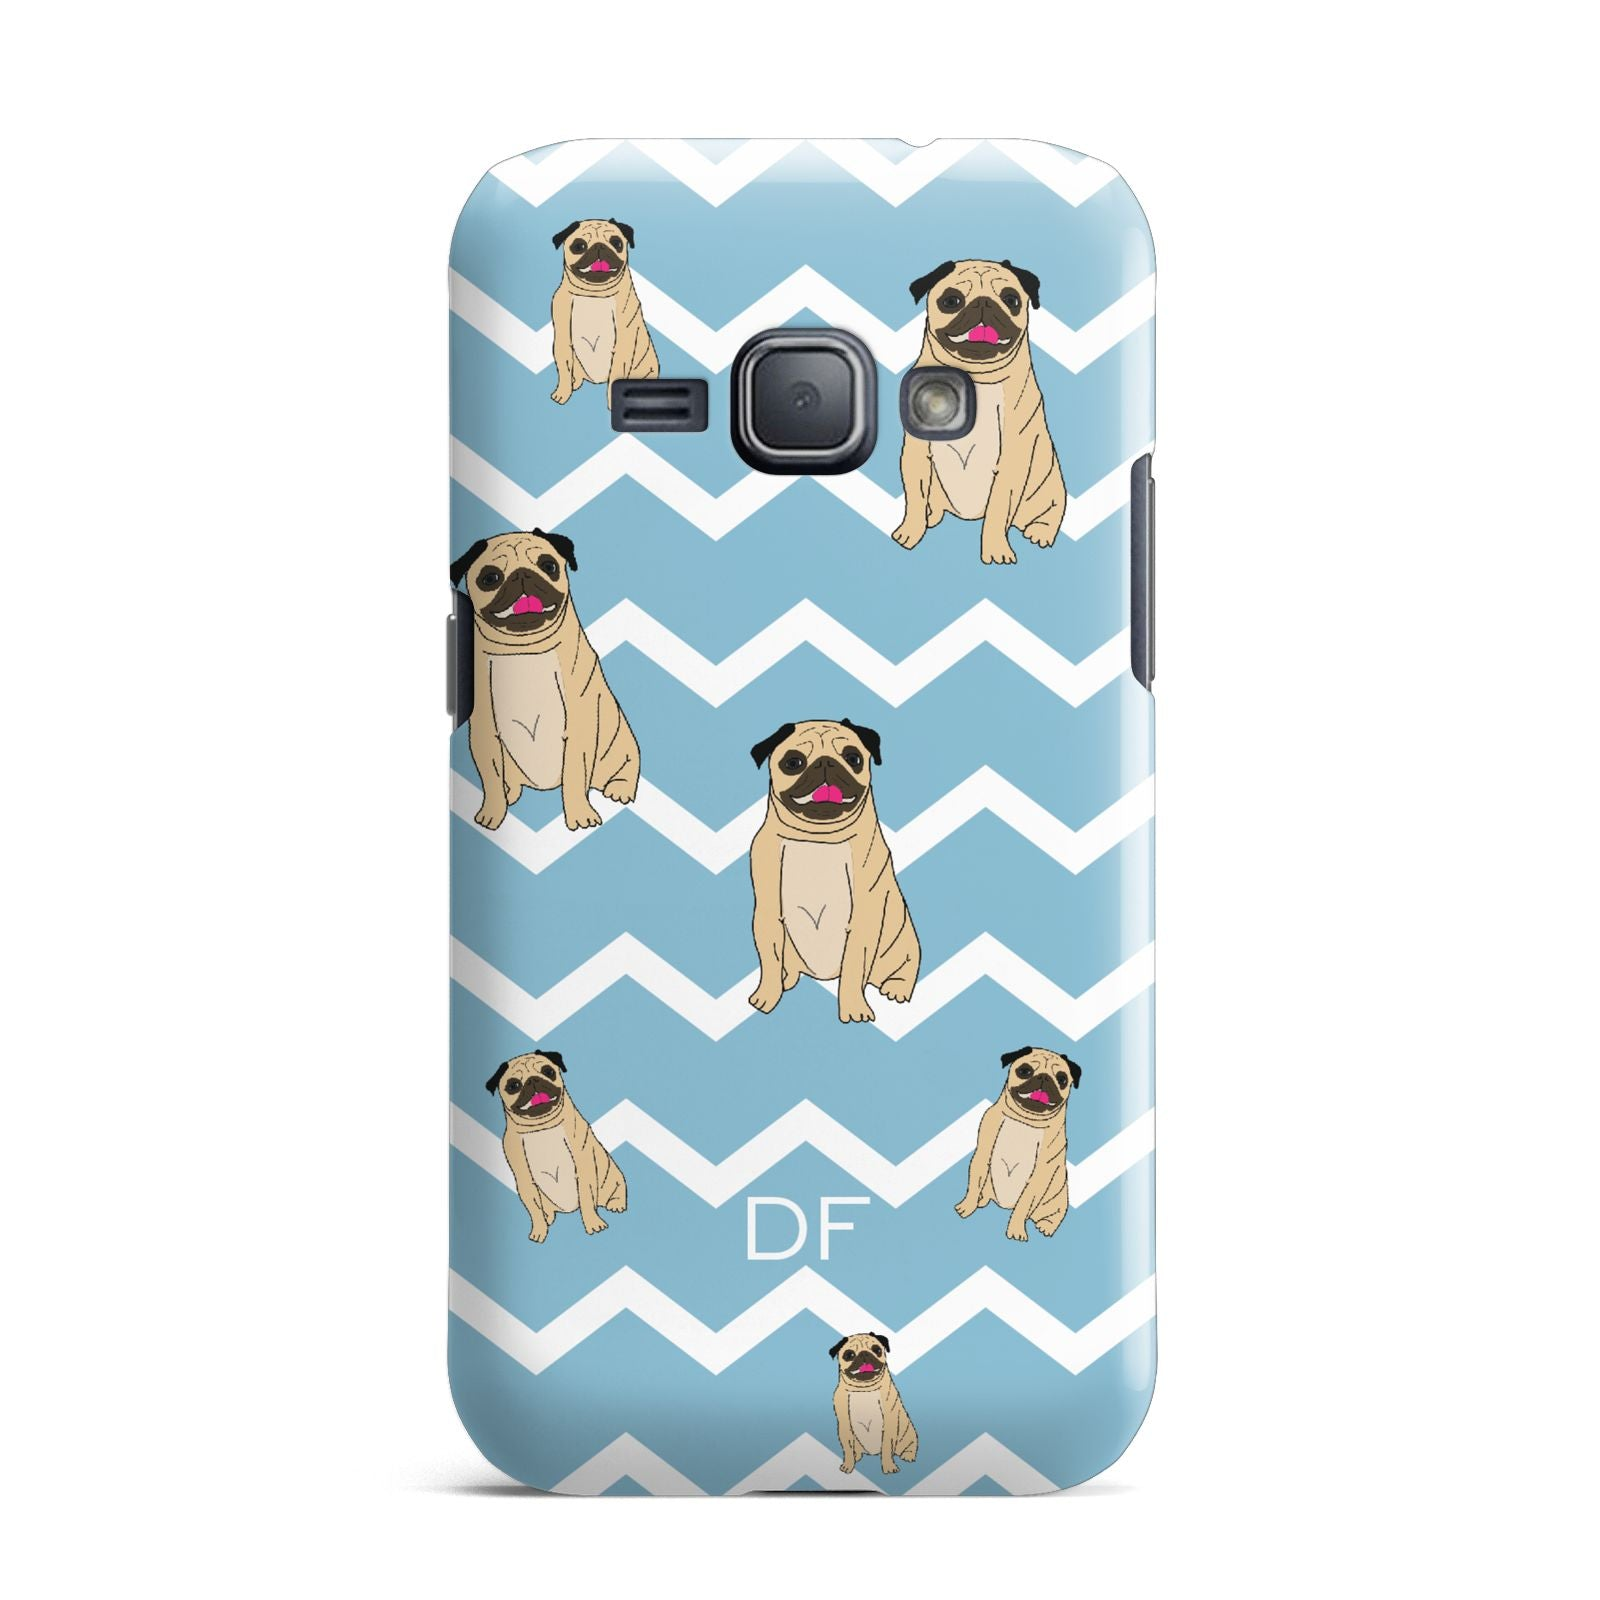 Personalised Pug Initials Samsung Galaxy J1 2016 Case